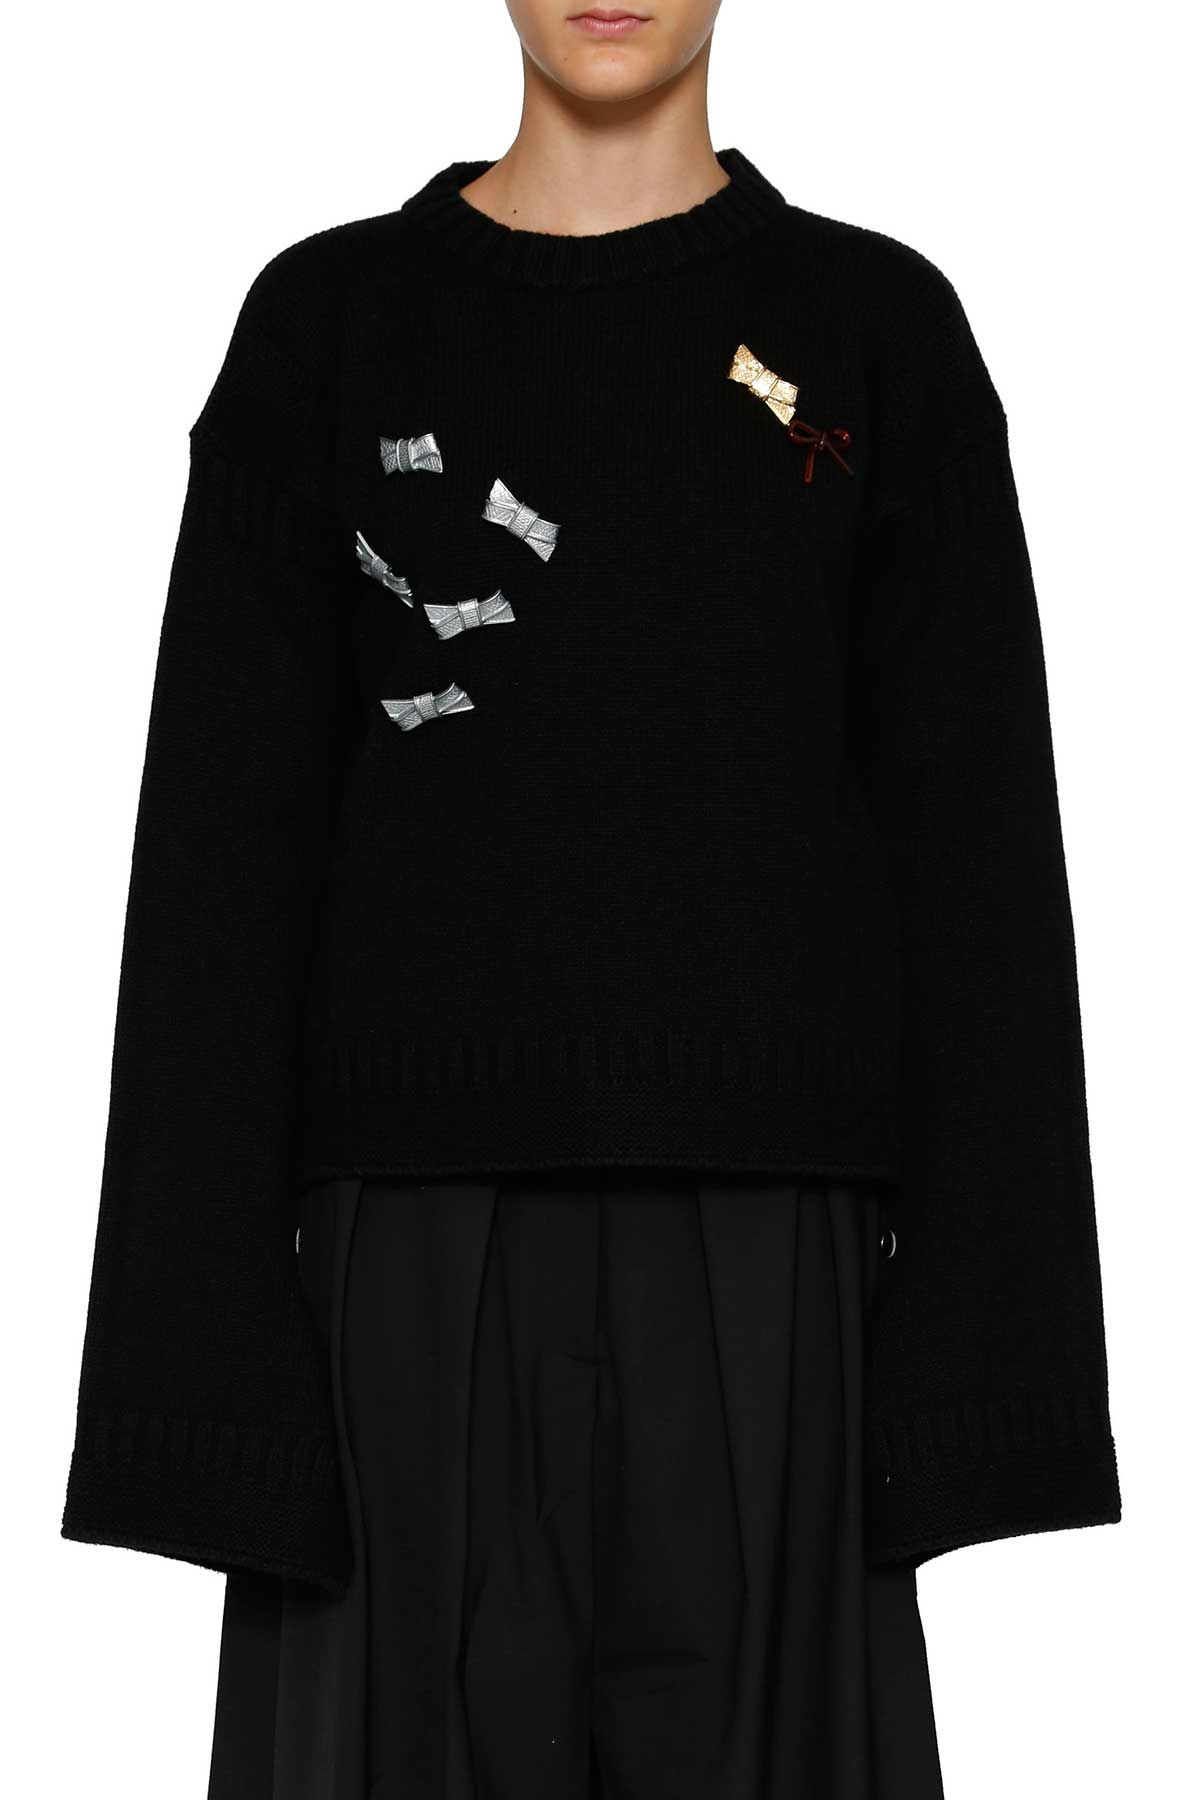 J.w. Anderson Bow Detail Jumper